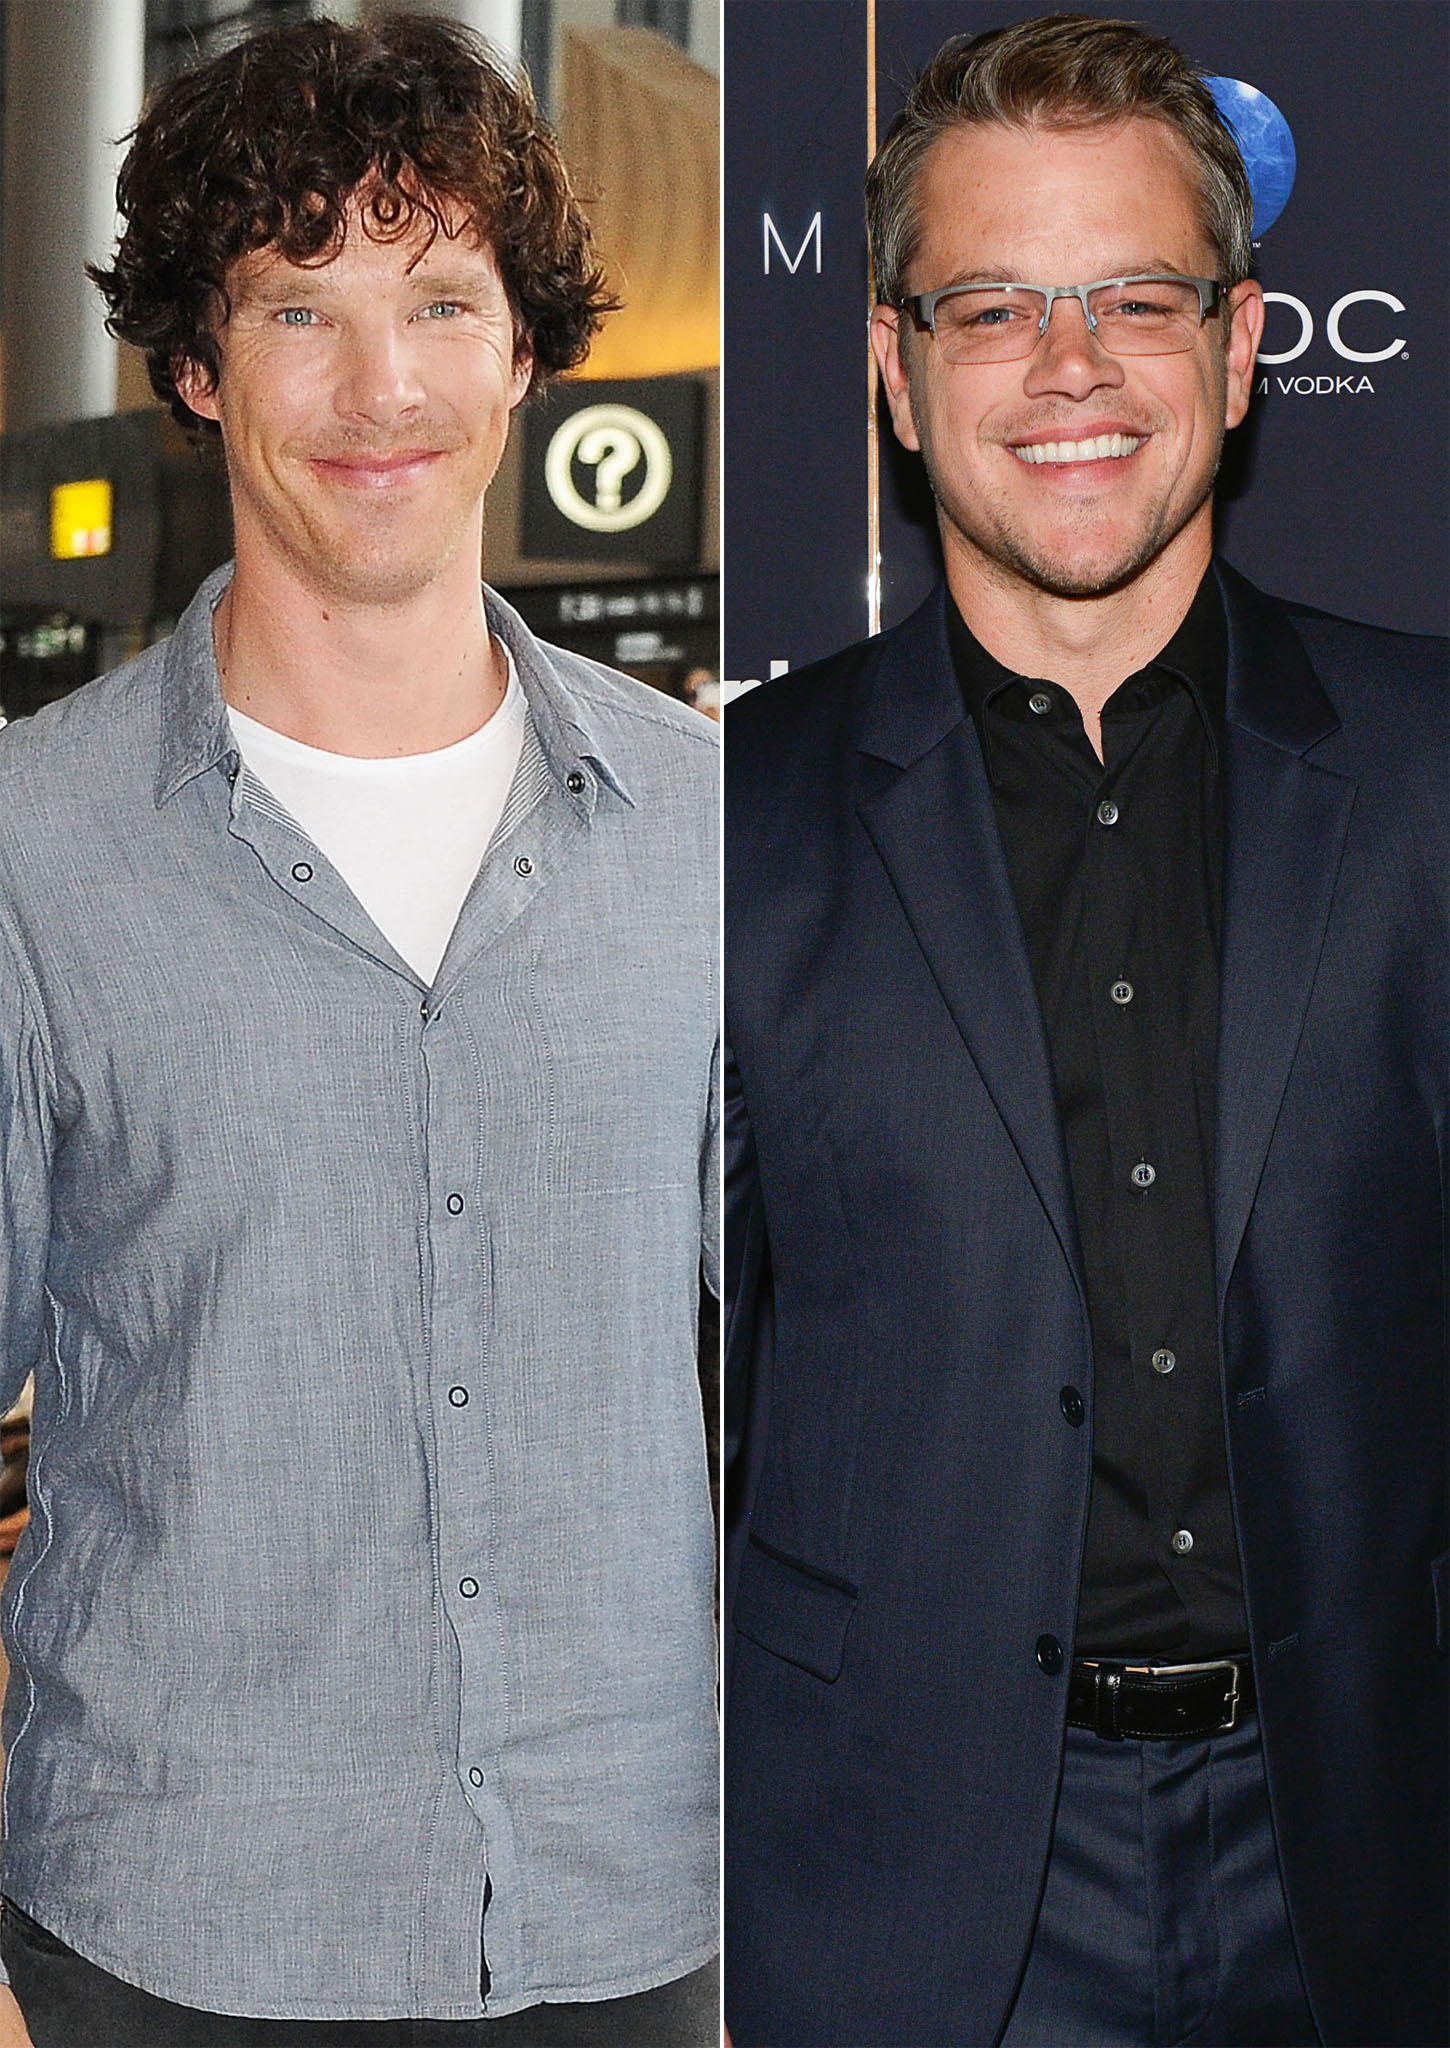 Benedict Cumberbatch and Matt Damon (Getty Images)